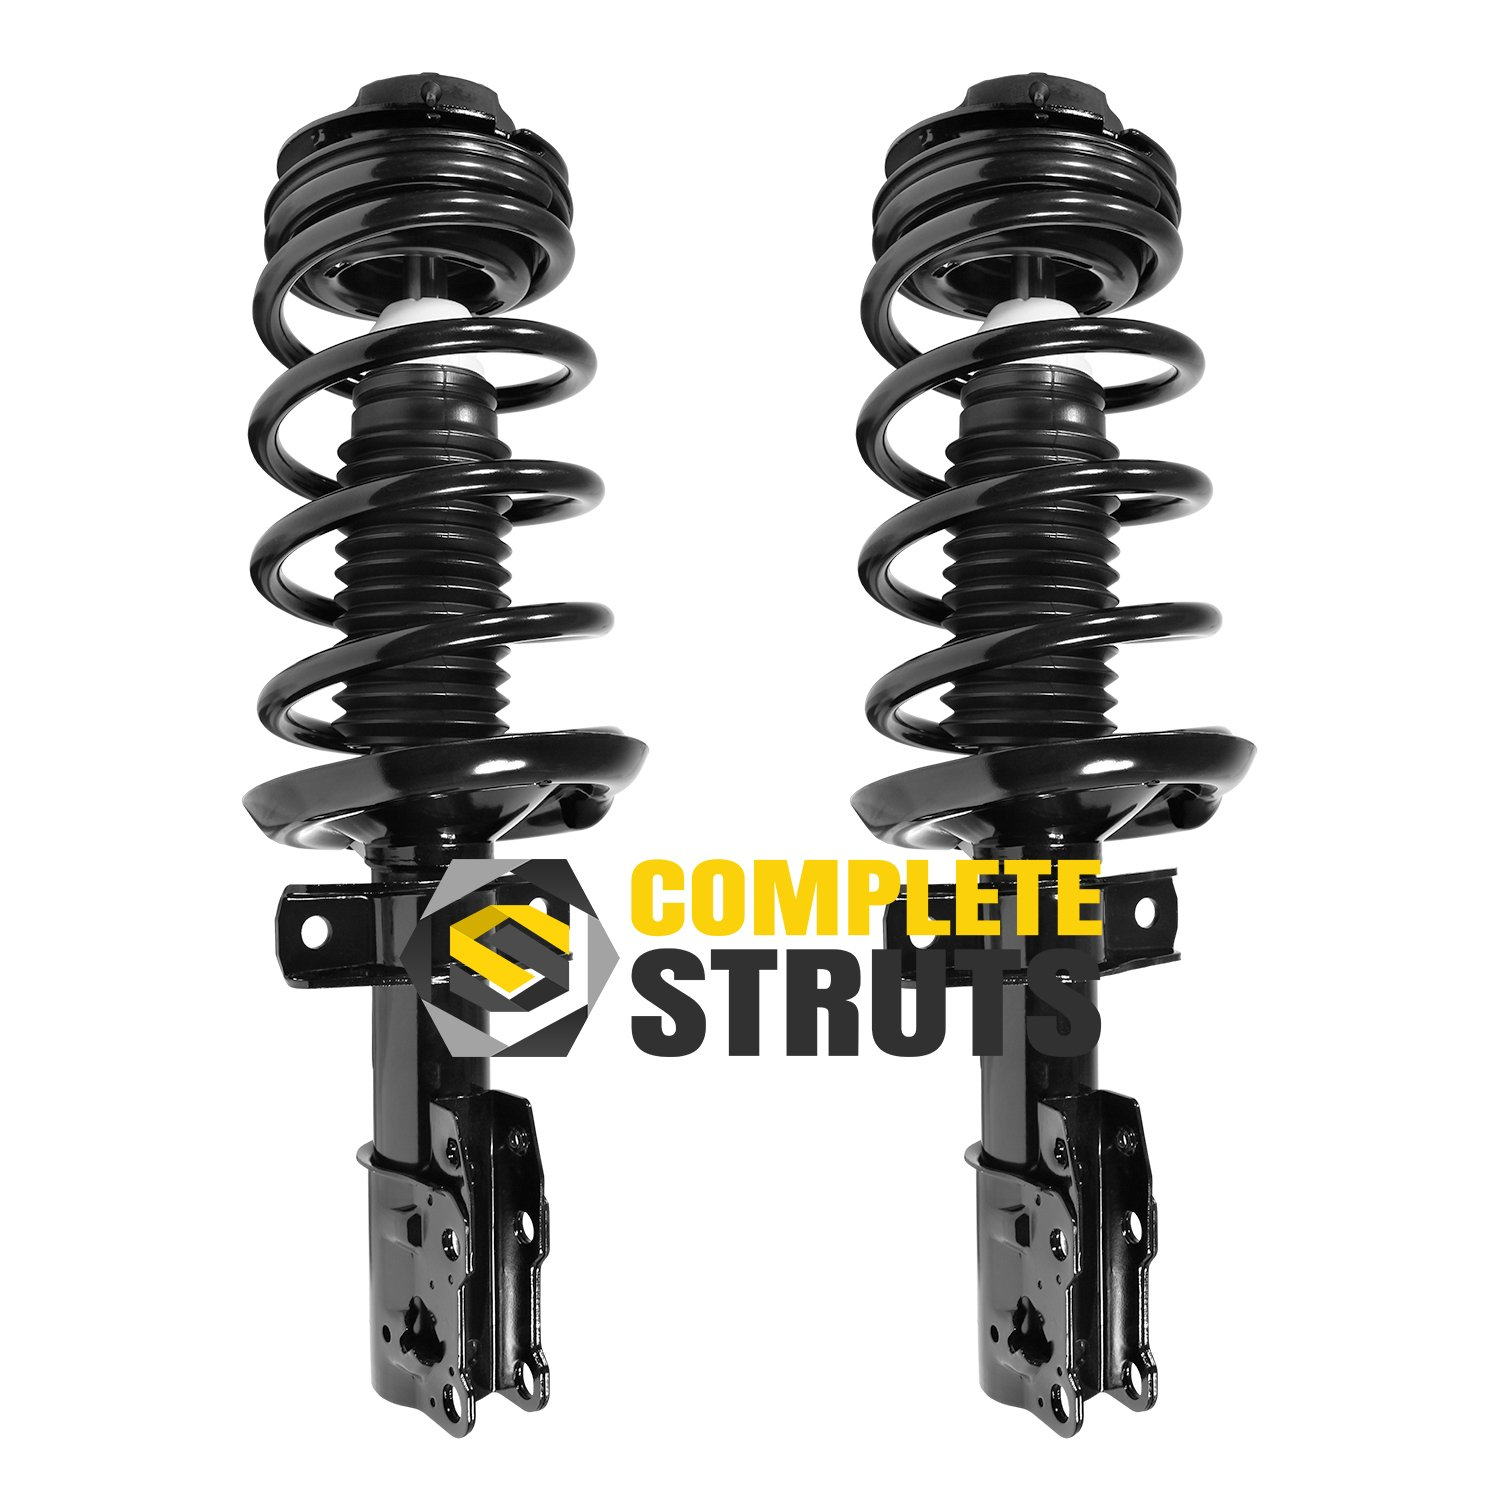 Scitoo 2pcs Front Left and Right Complete Strut Shock Assembly fit 2009-2012 Ford F150 2WD RWD